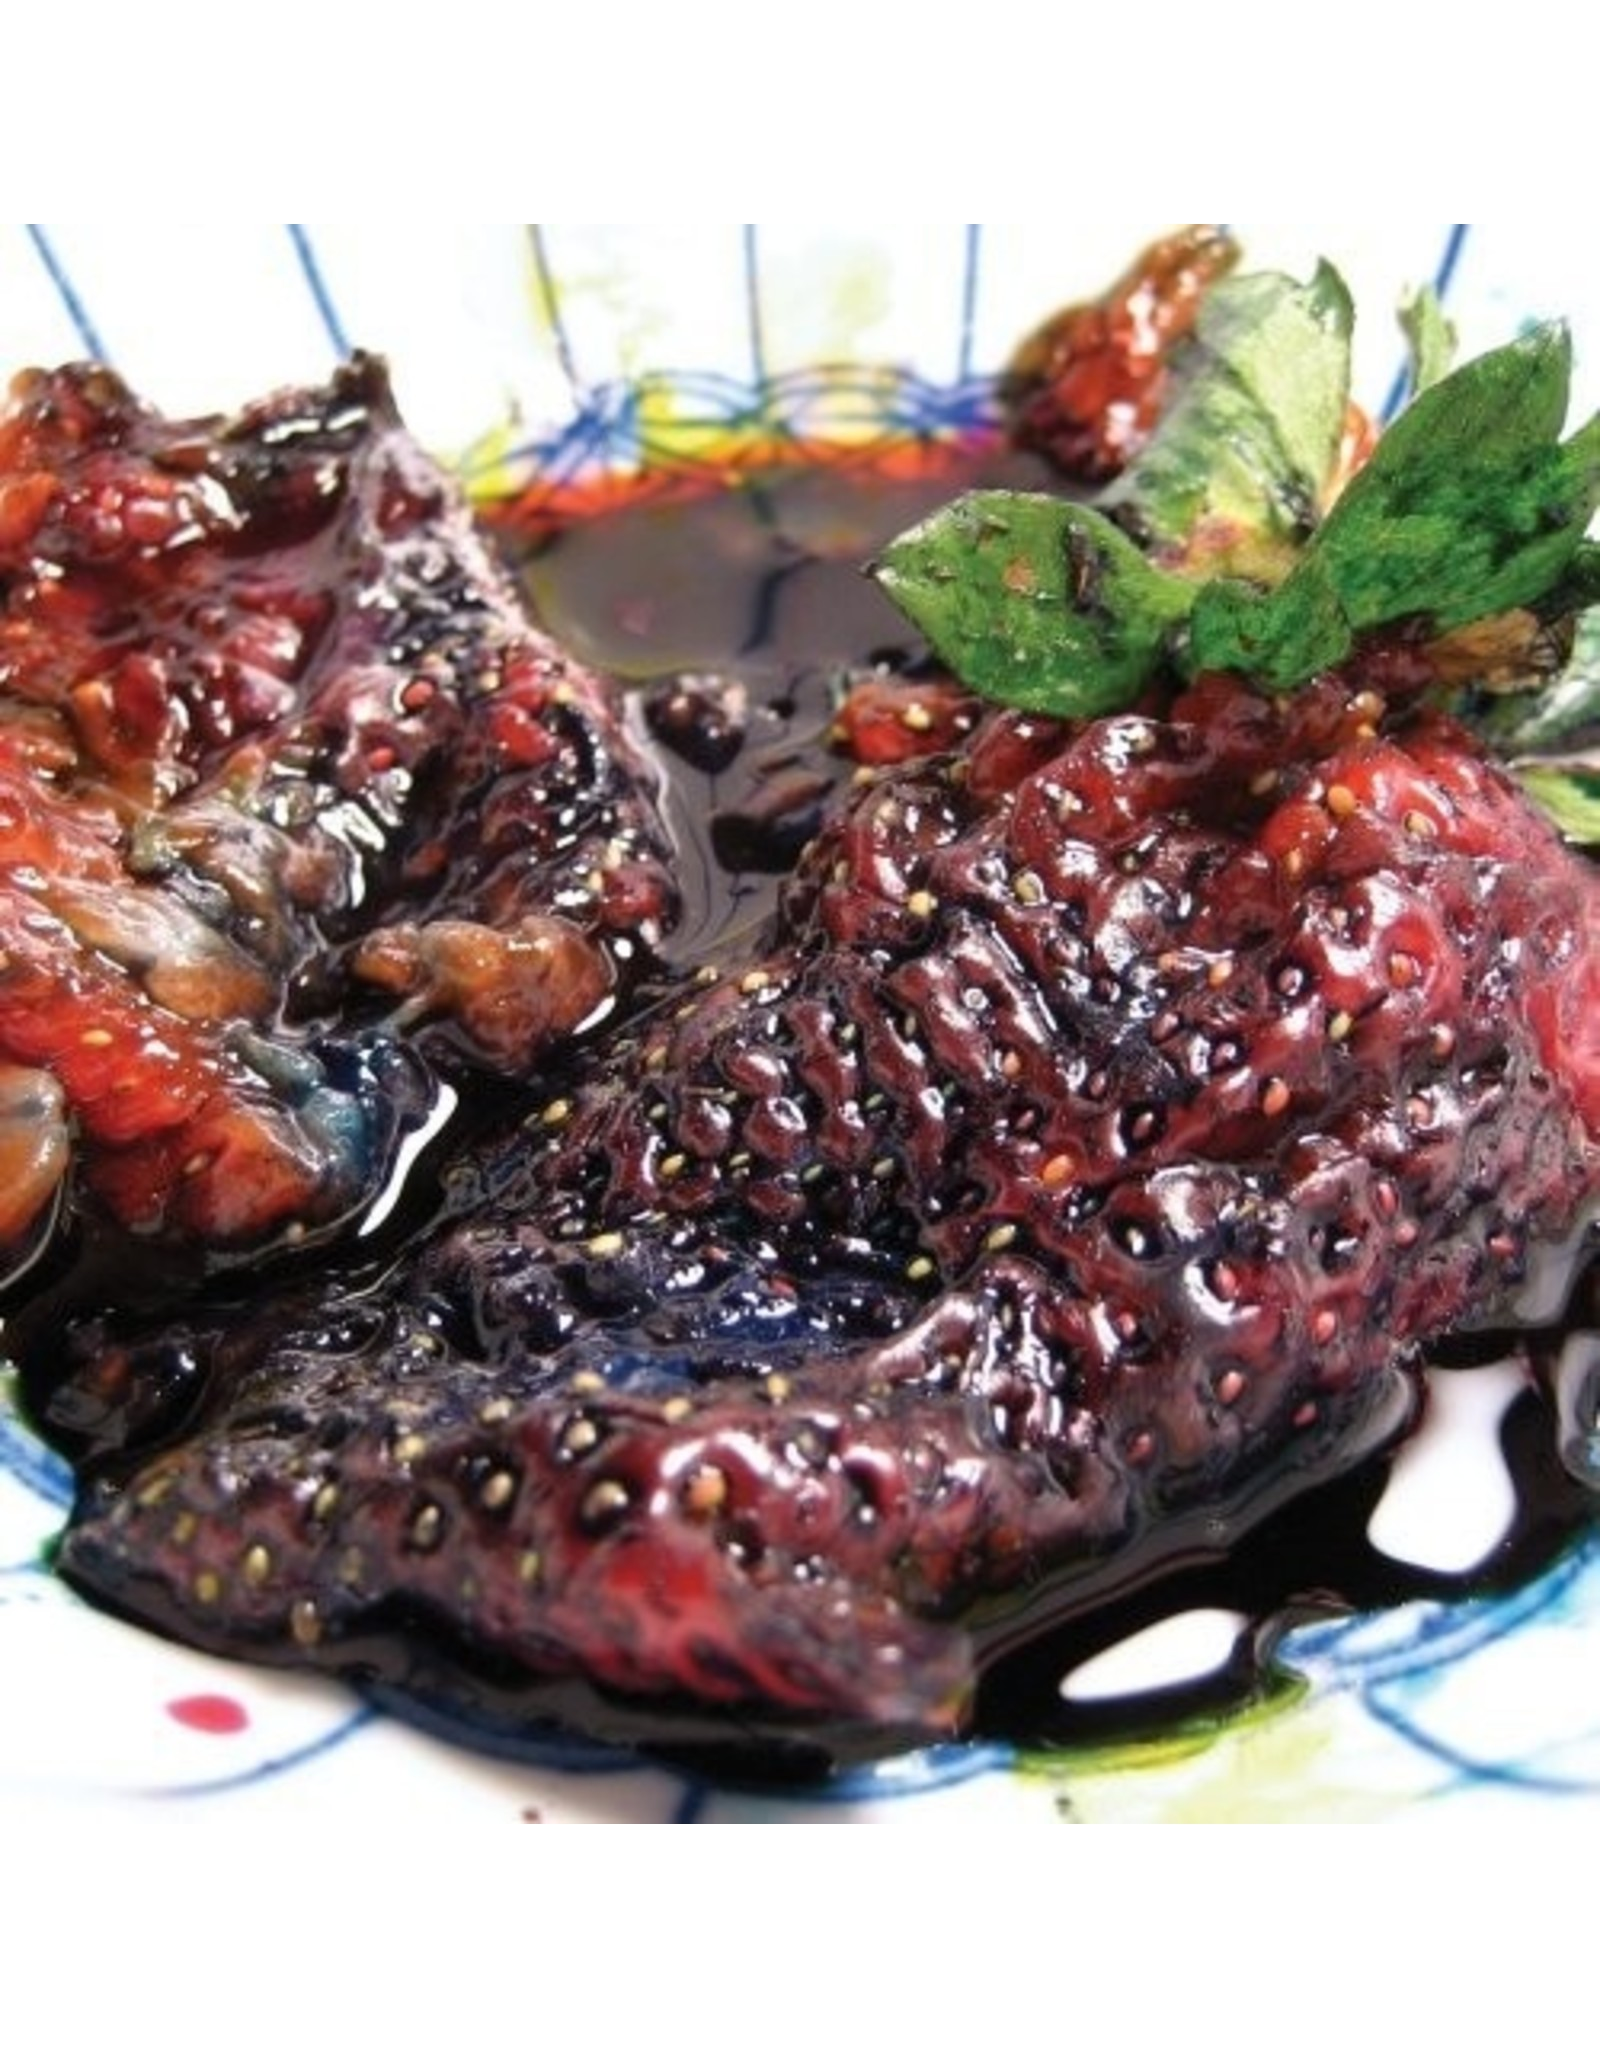 New Vinyl Animal Collective - Strawberry Jam LP